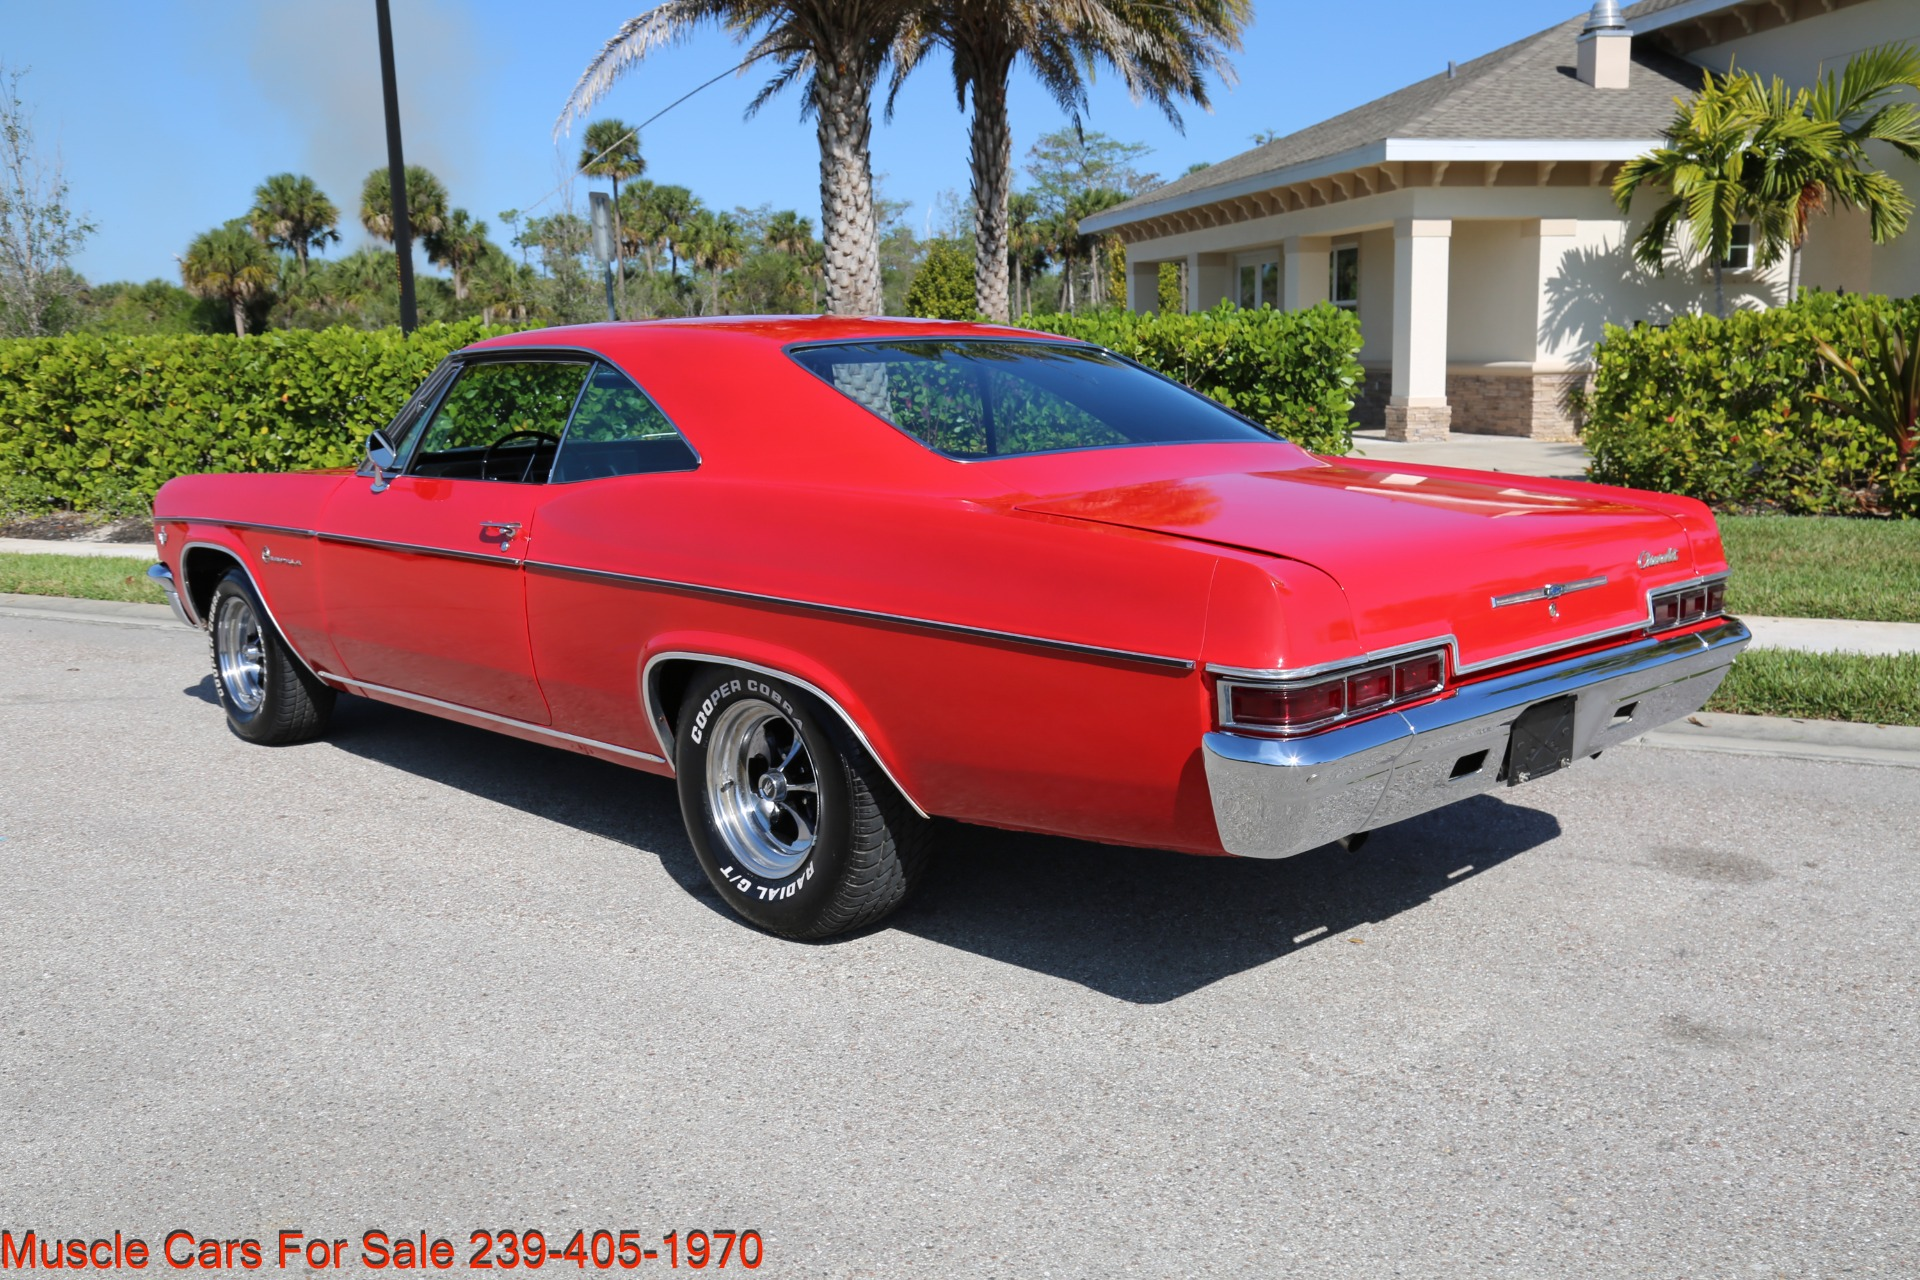 Used 1966 CHEVY IMPALA Impala for sale $24,000 at Muscle Cars for Sale Inc. in Fort Myers FL 33912 6